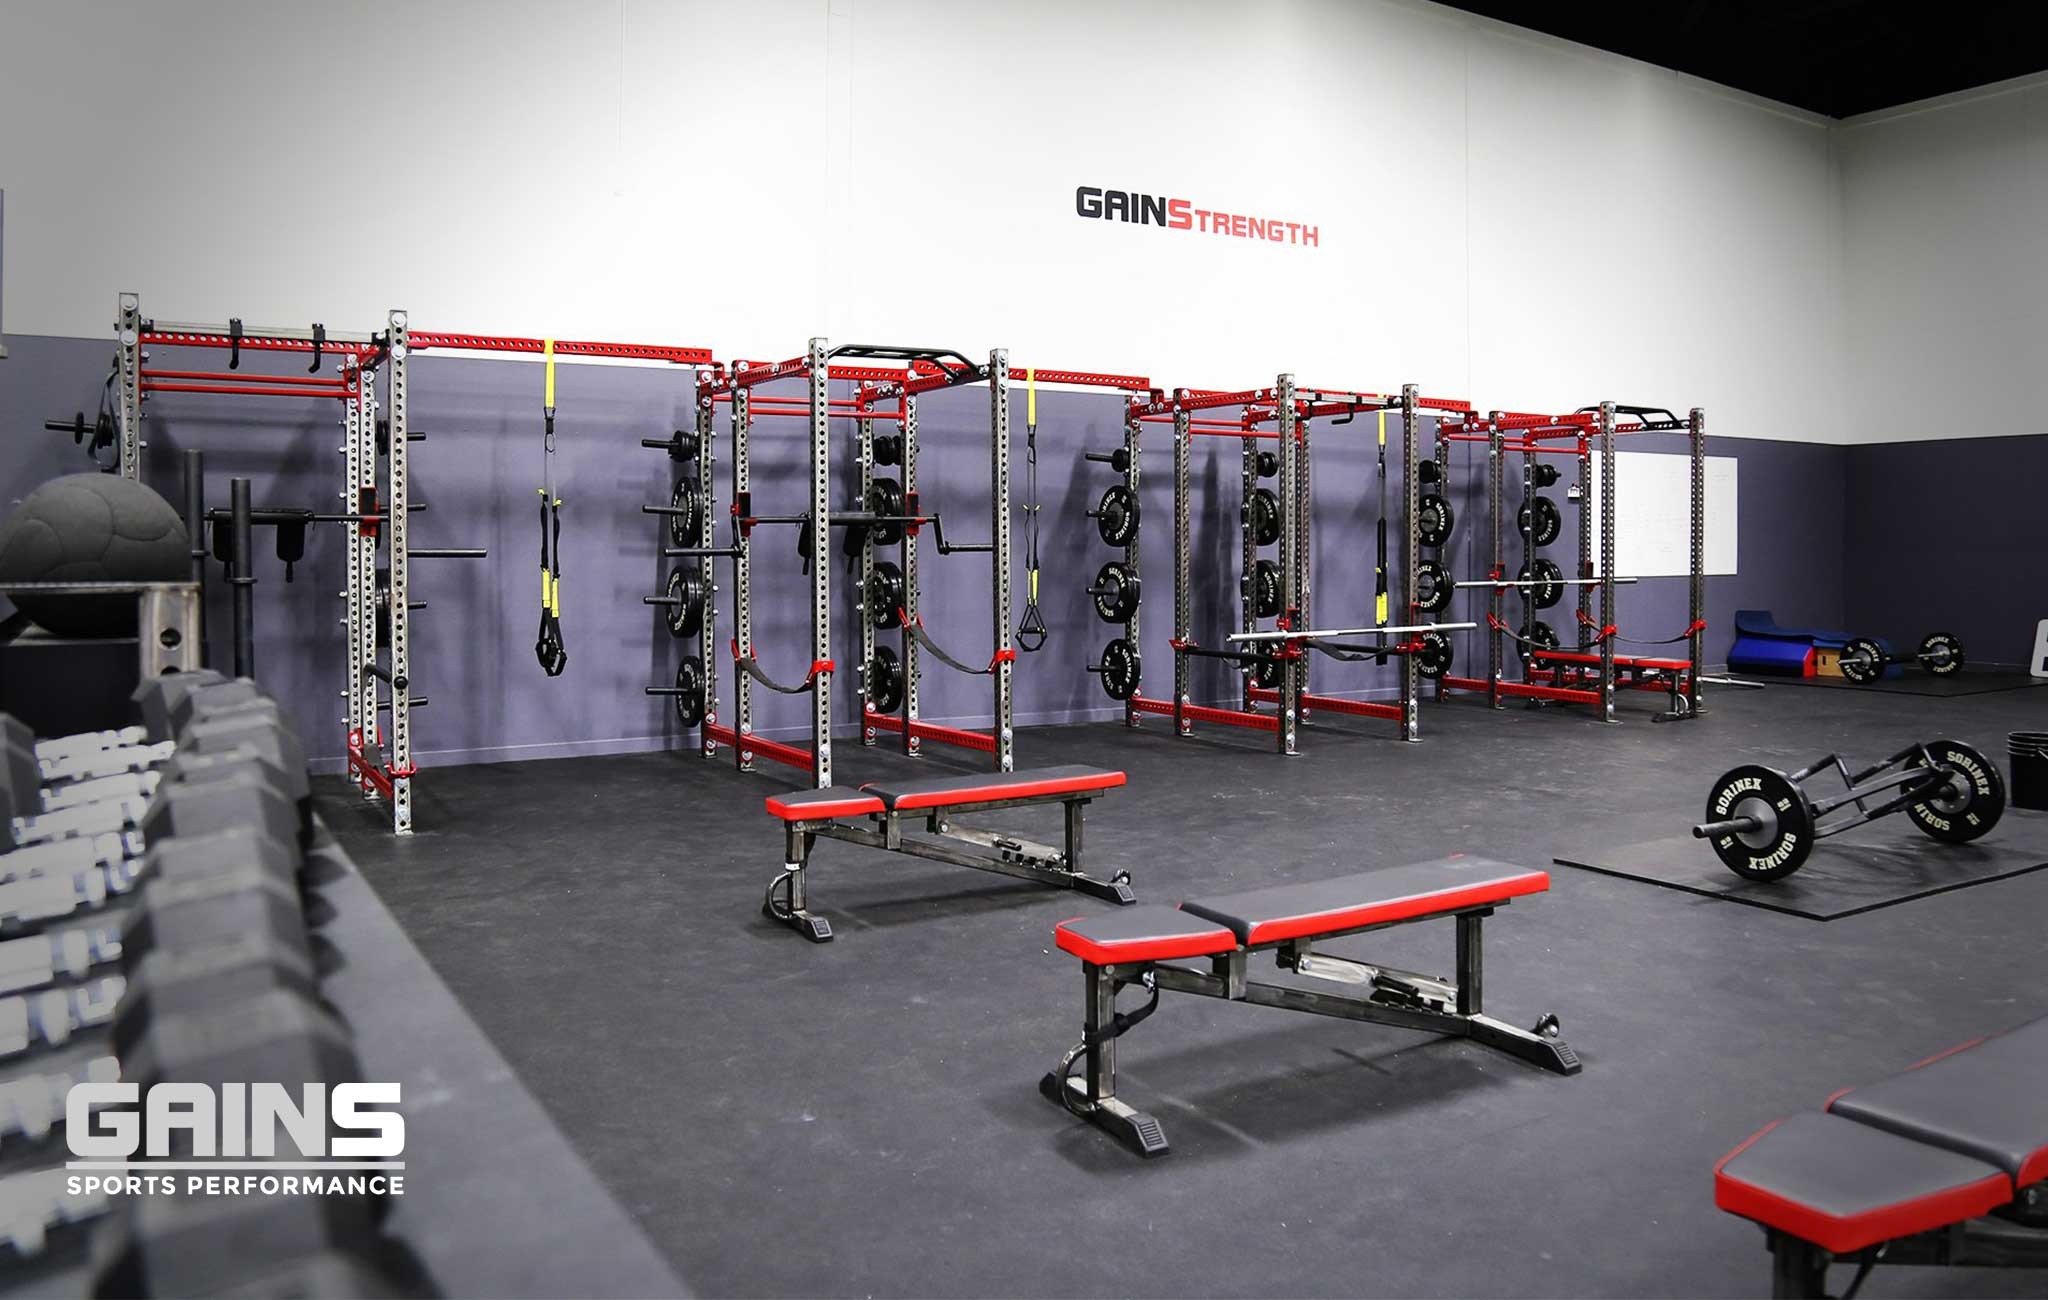 Gains Performance Private Training facility Sorinex